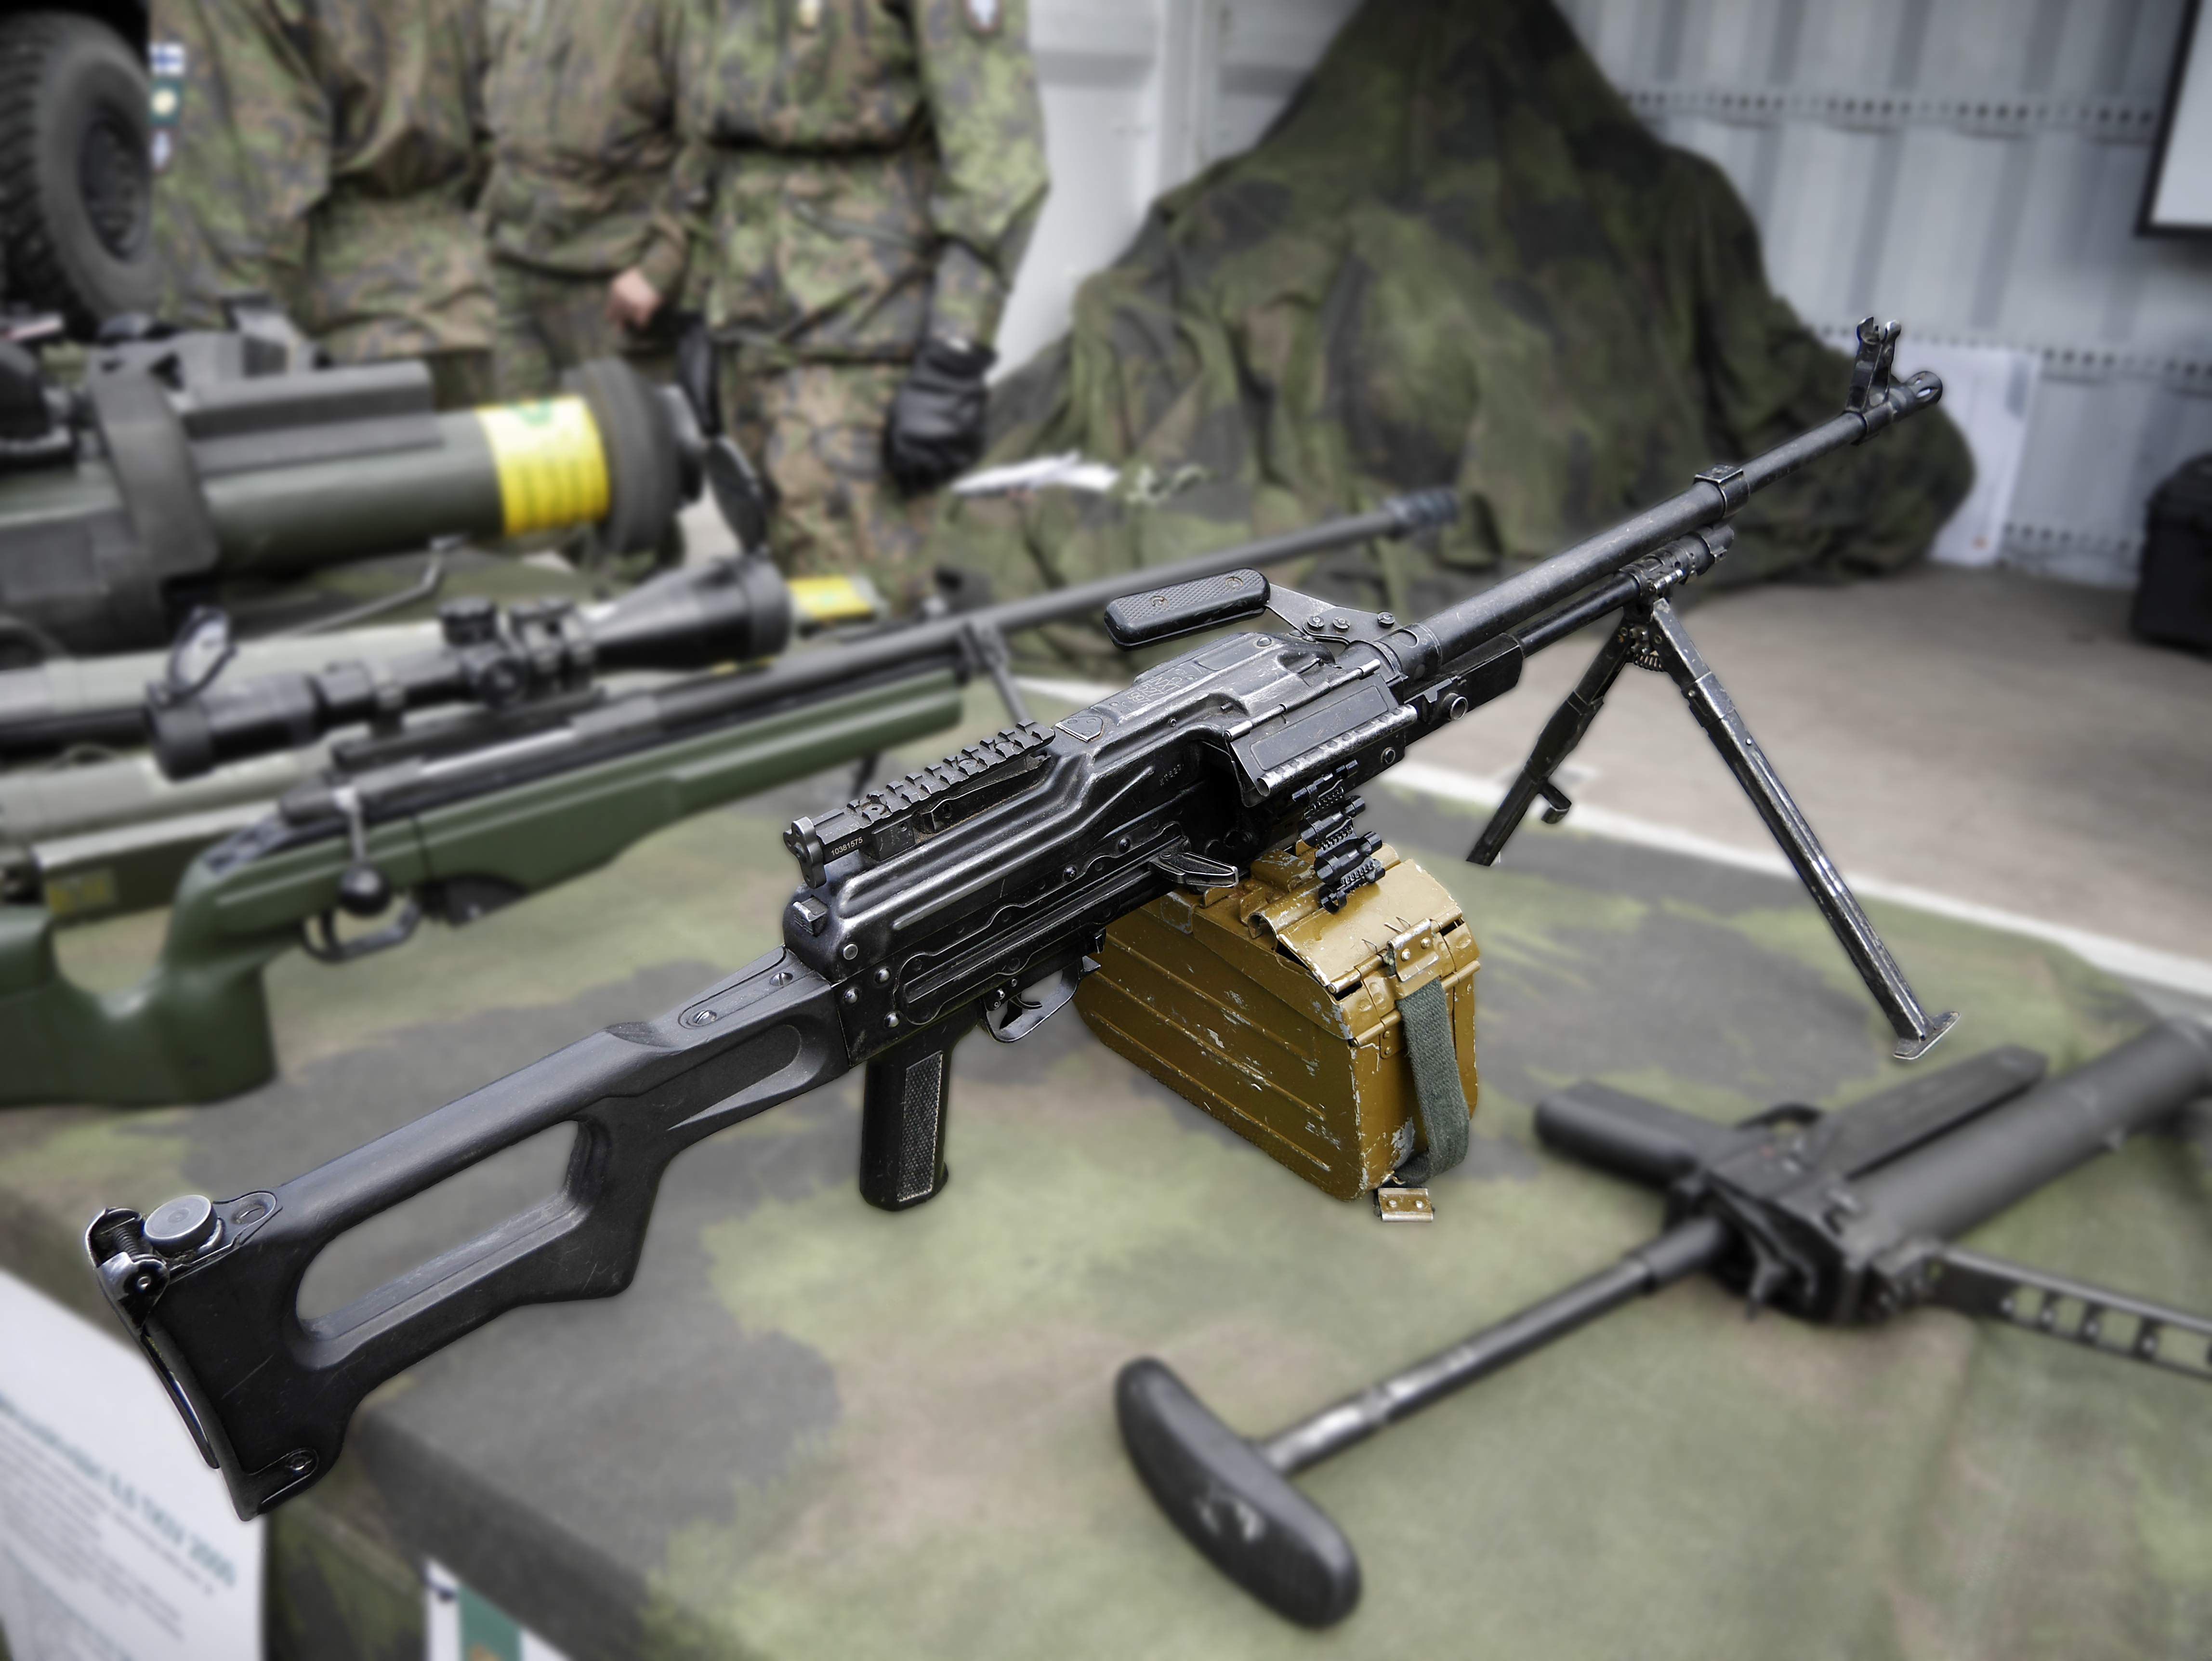 File:Machine gun 762 KK PKM 20180604.jpg